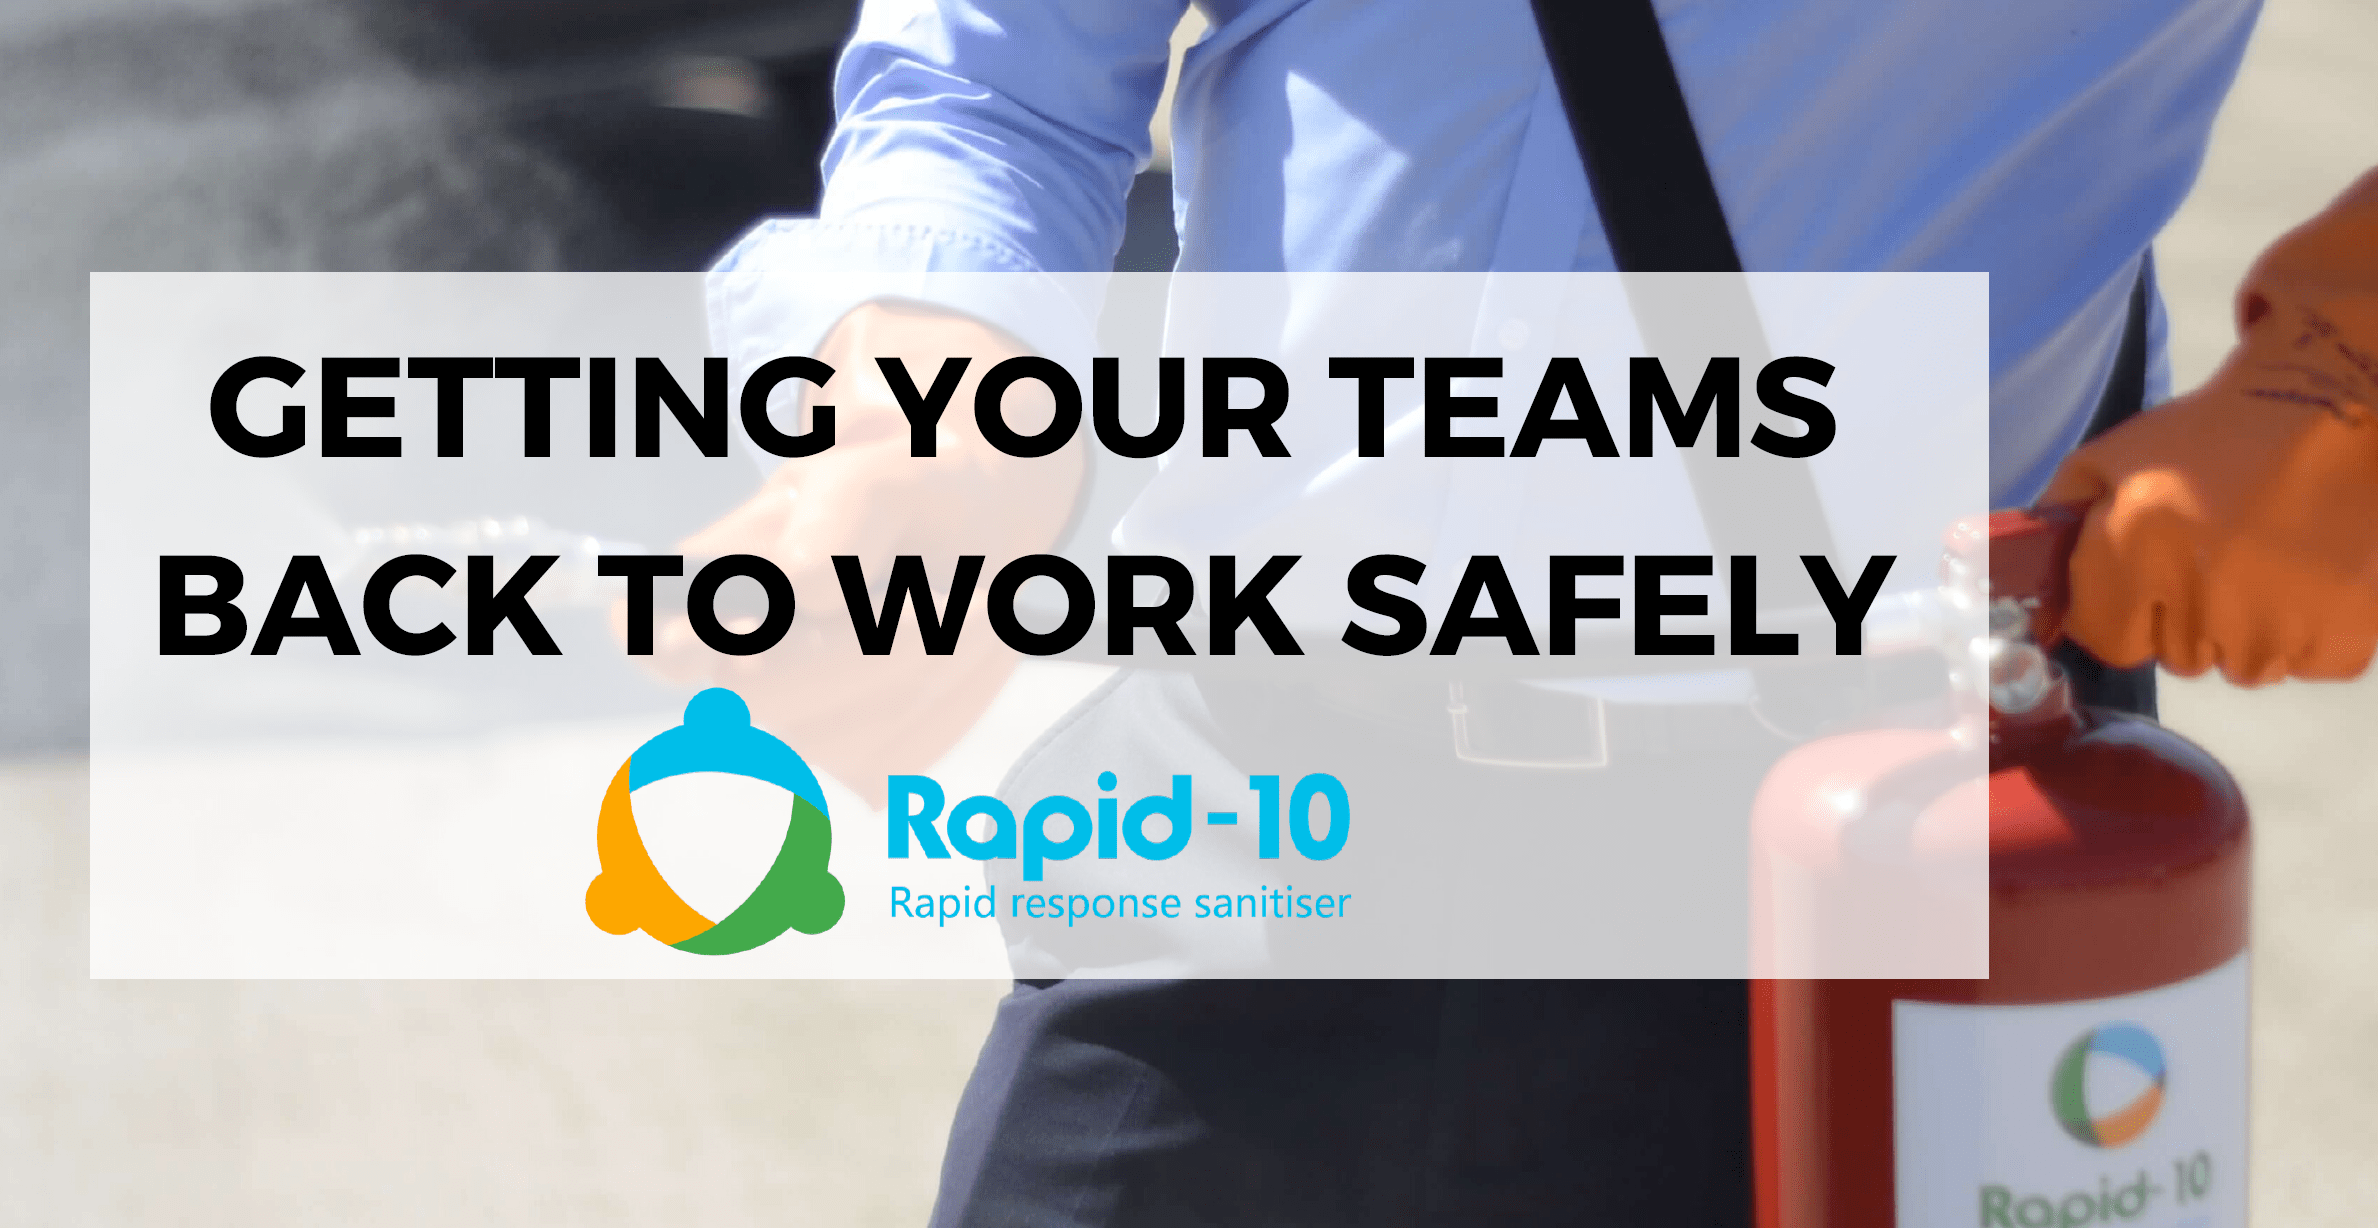 Protect your workplace, business and public areas with Rapid-10 portable sanitising solution. Help keep people safe.